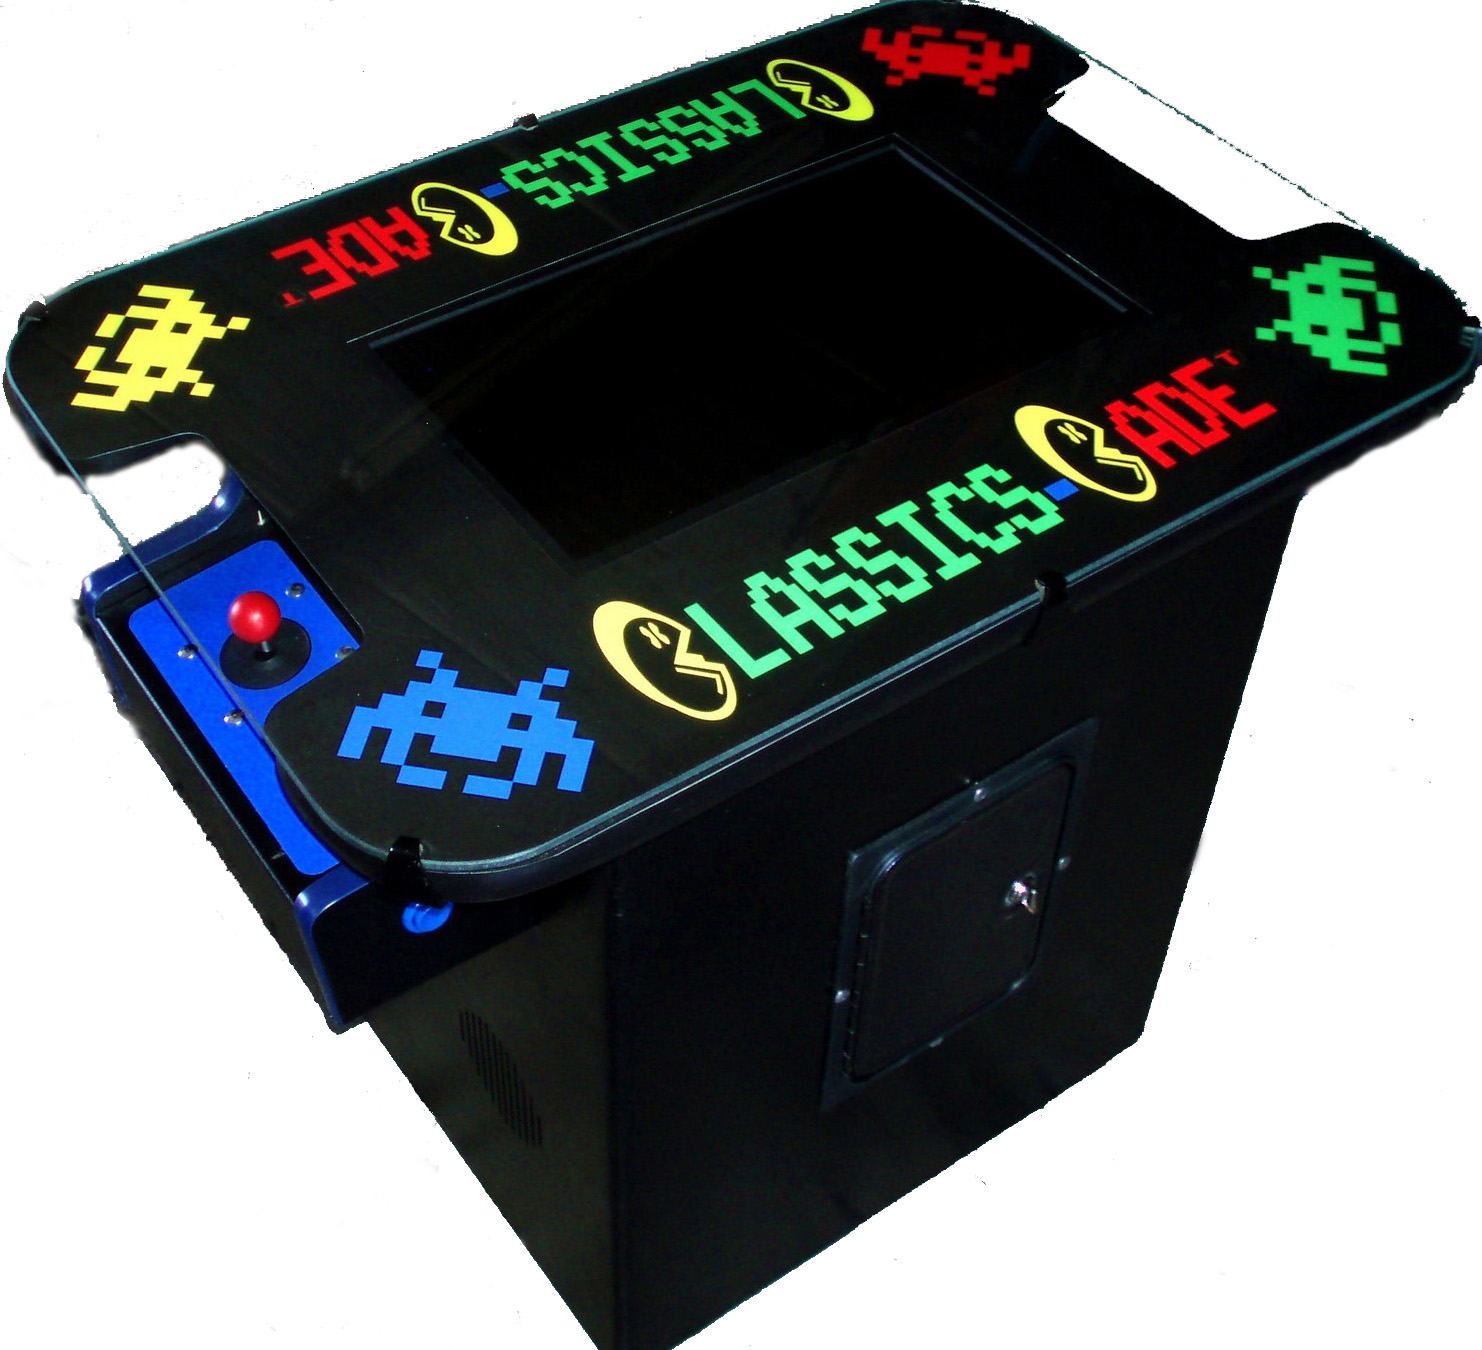 Cocktail Arcade Cabinet Arcade Video Game Cabinet Sizes Weights And Uses Aceamusementsus